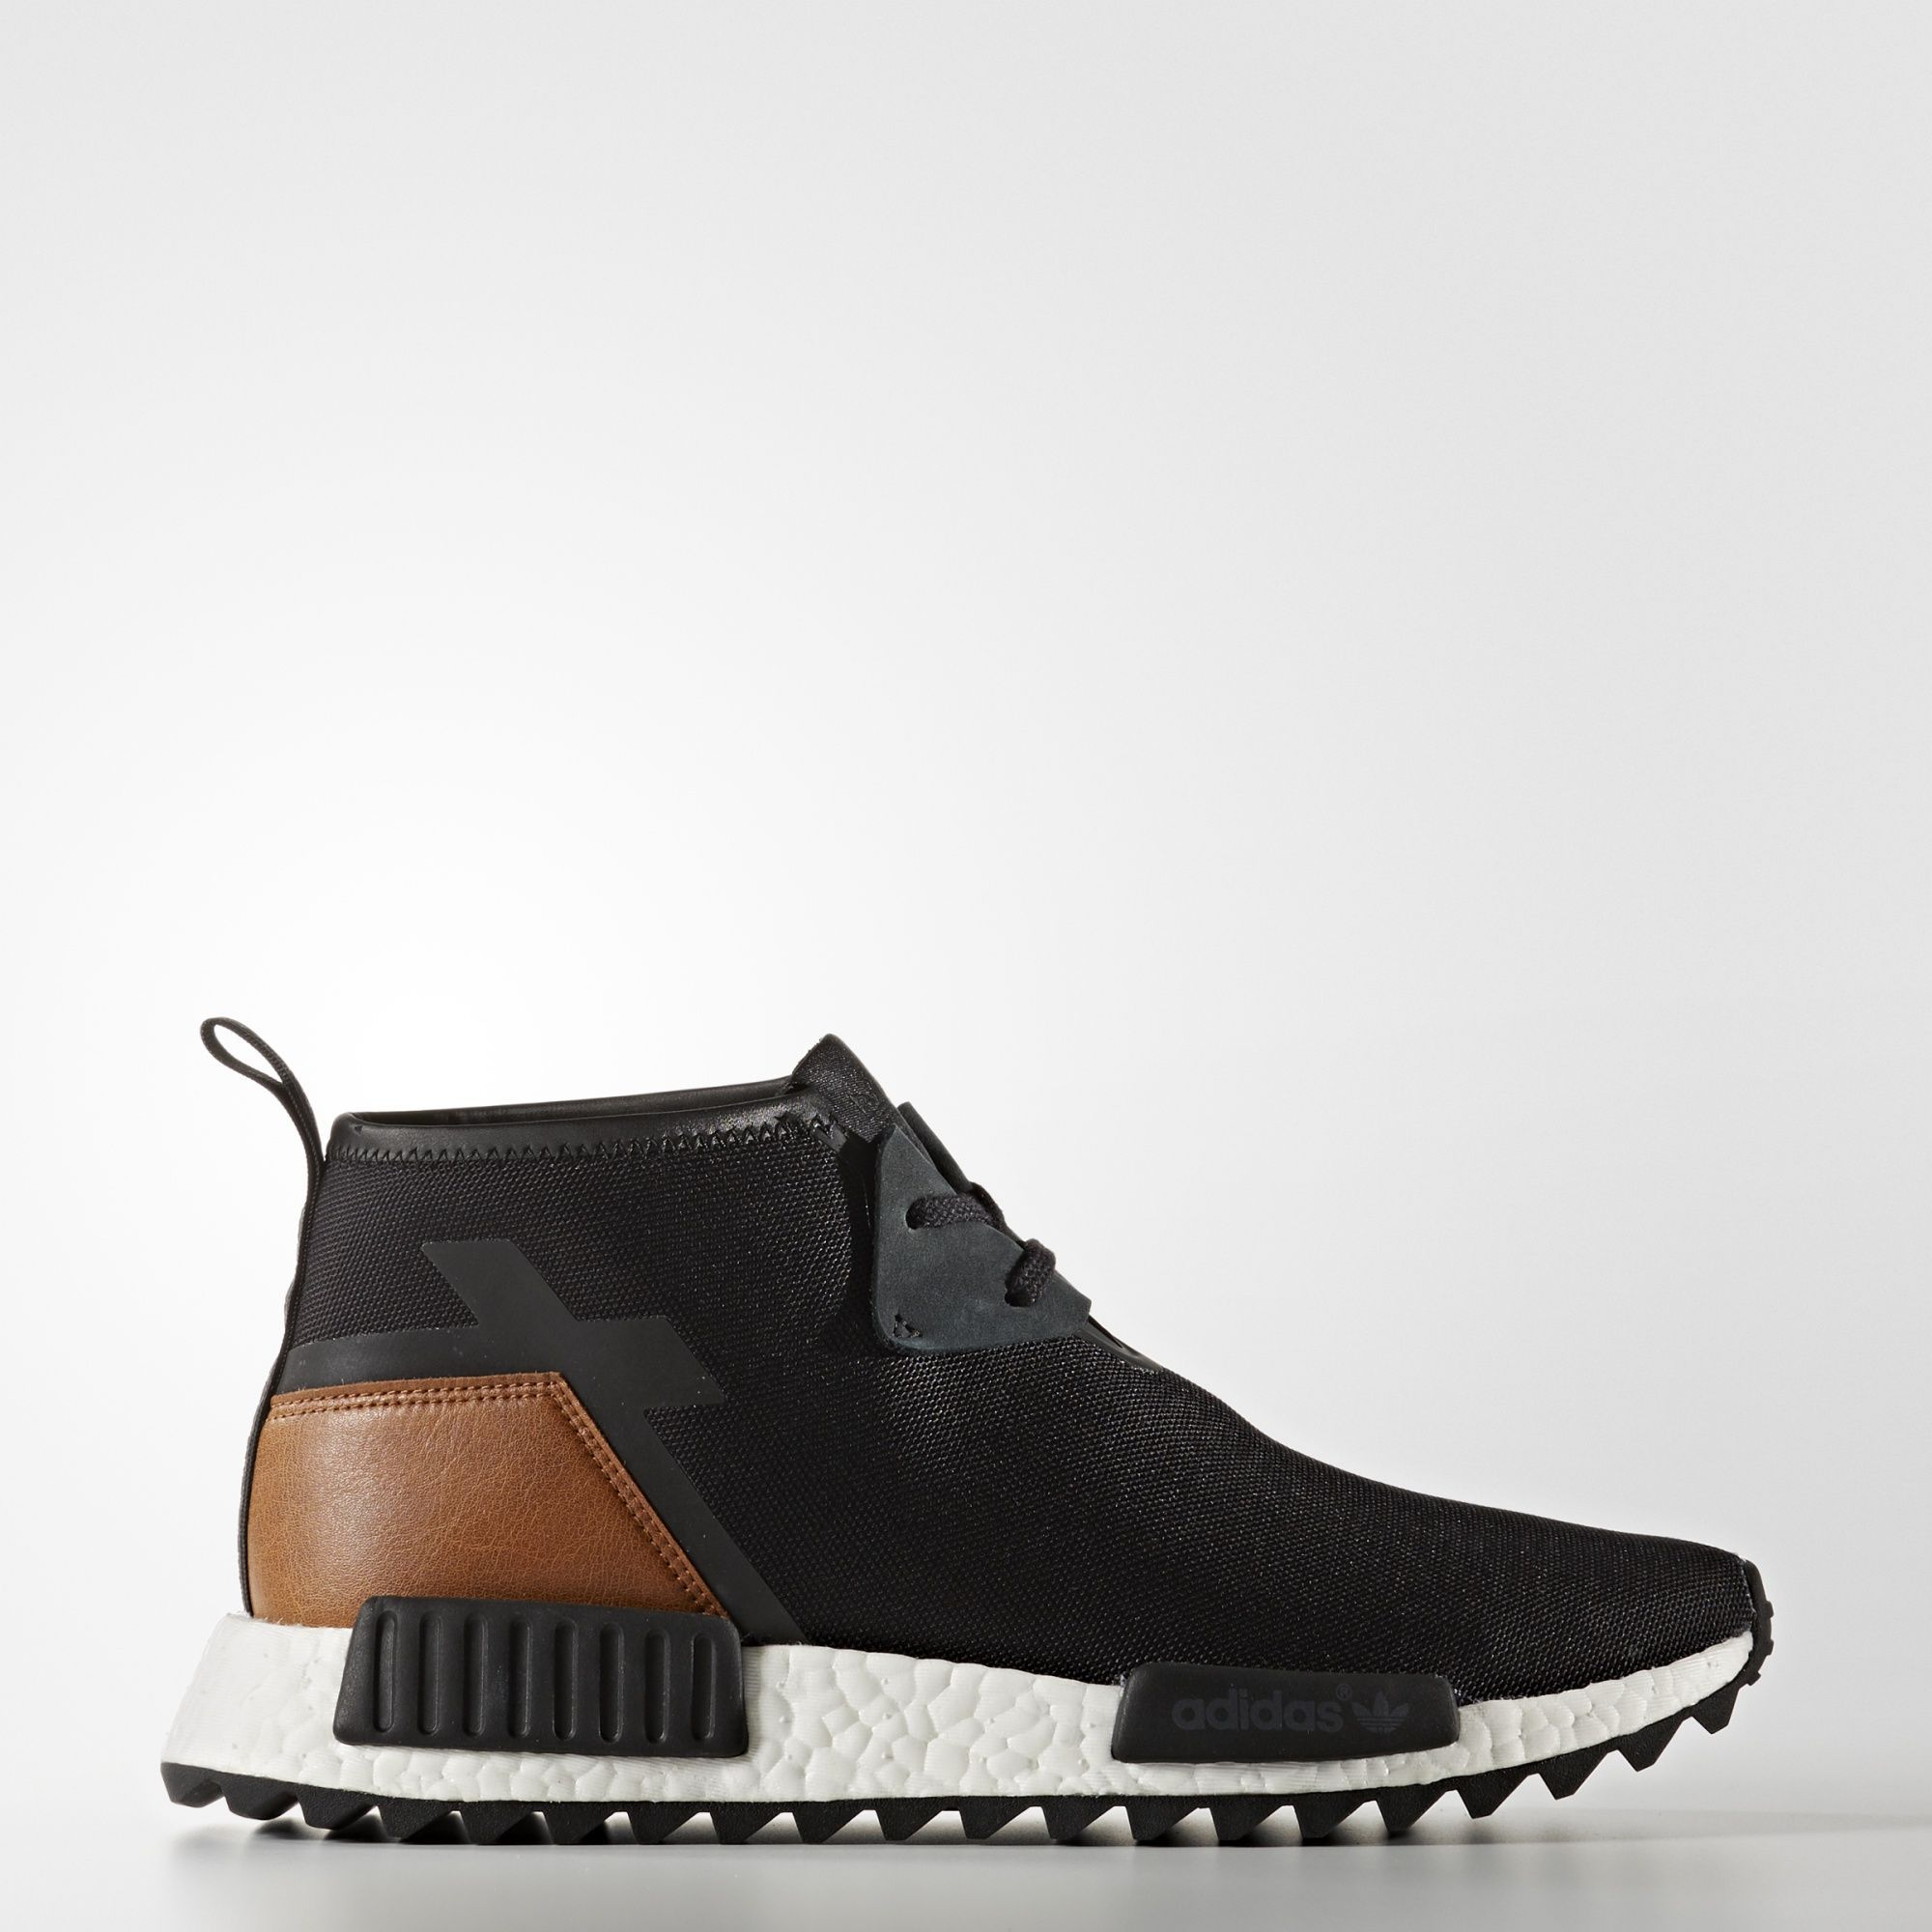 adidas nmd c1 trail shoes this style it is mine pinterest